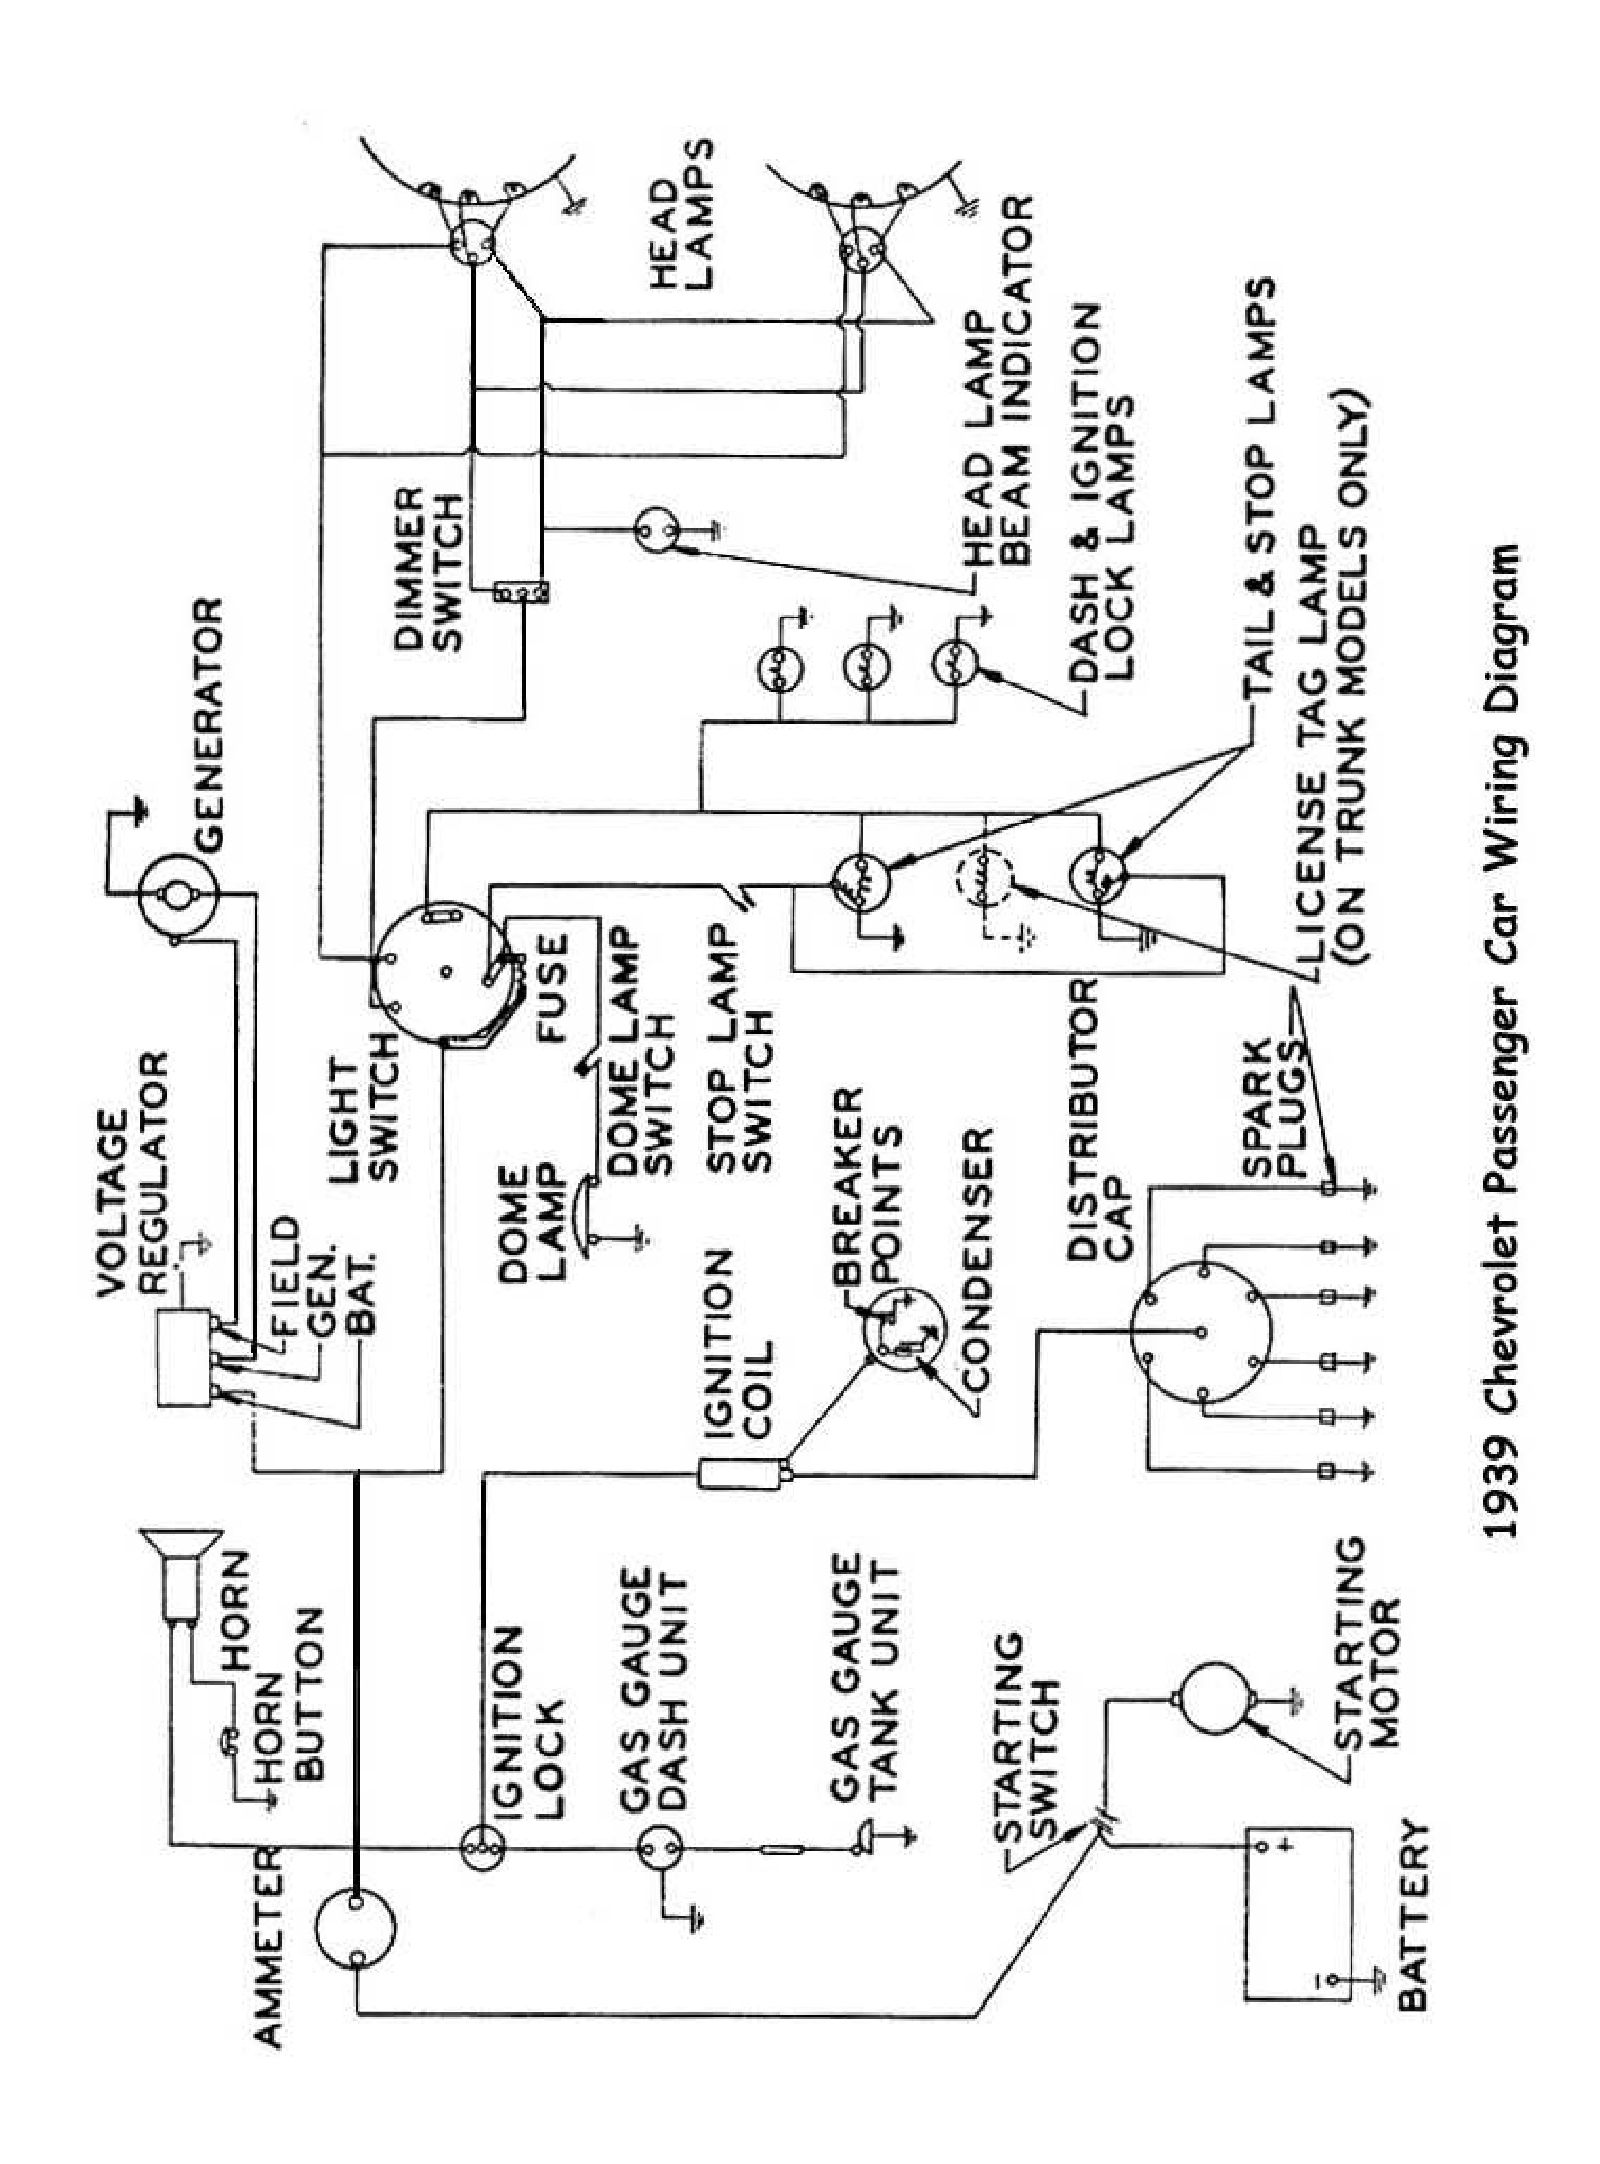 12v generator wiring diagram for bike